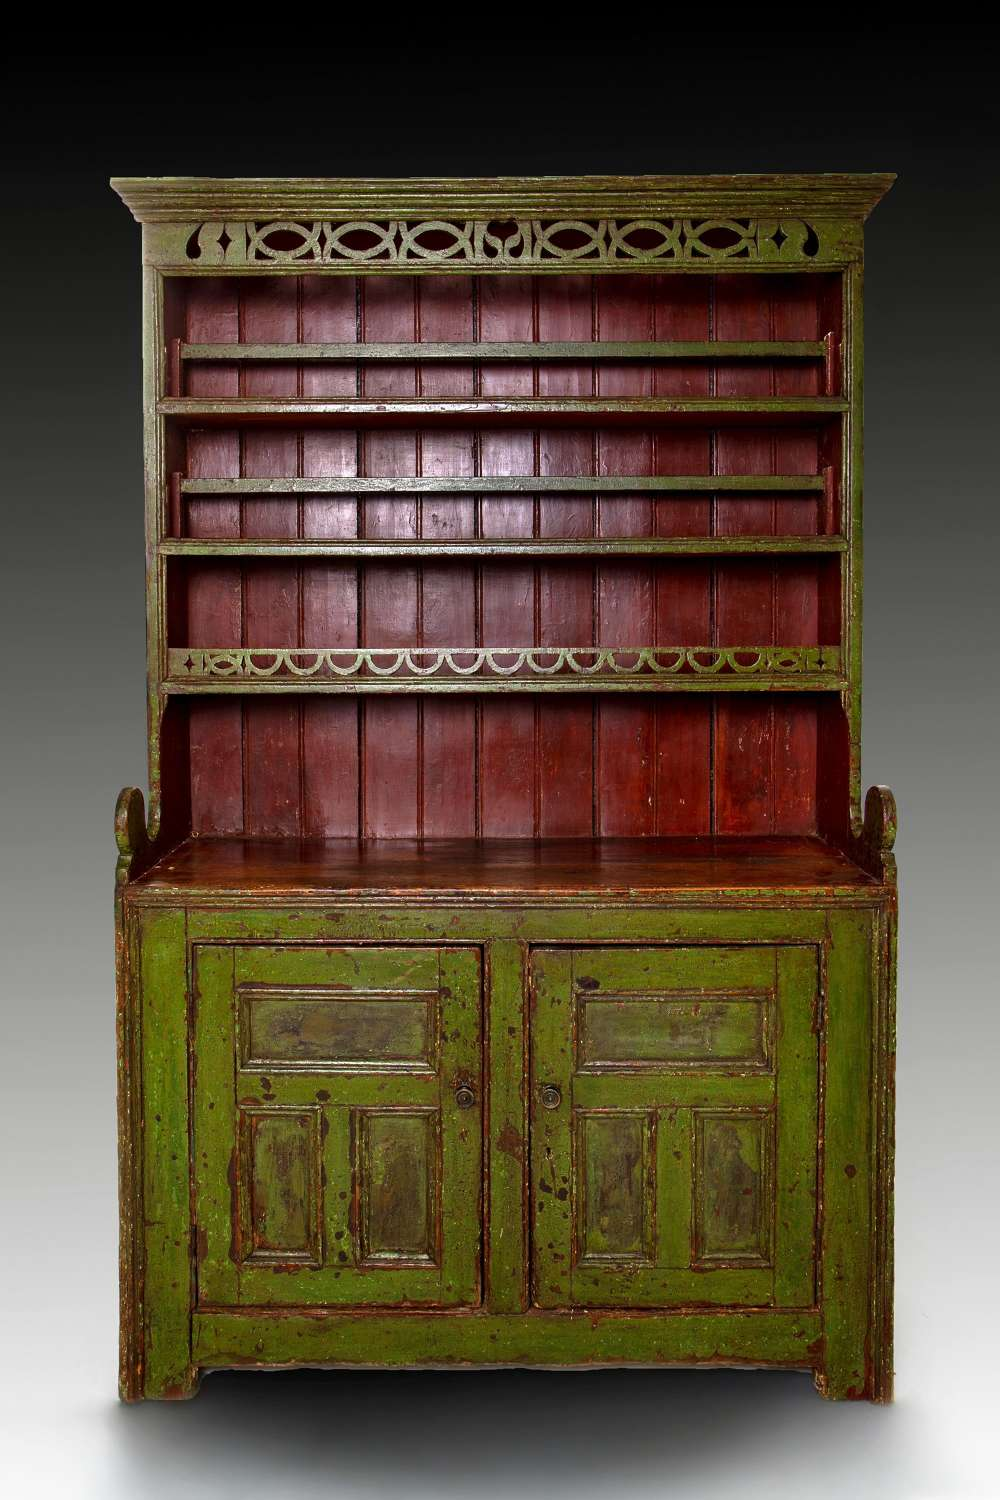 An original green painted early 19th century Irish dresser